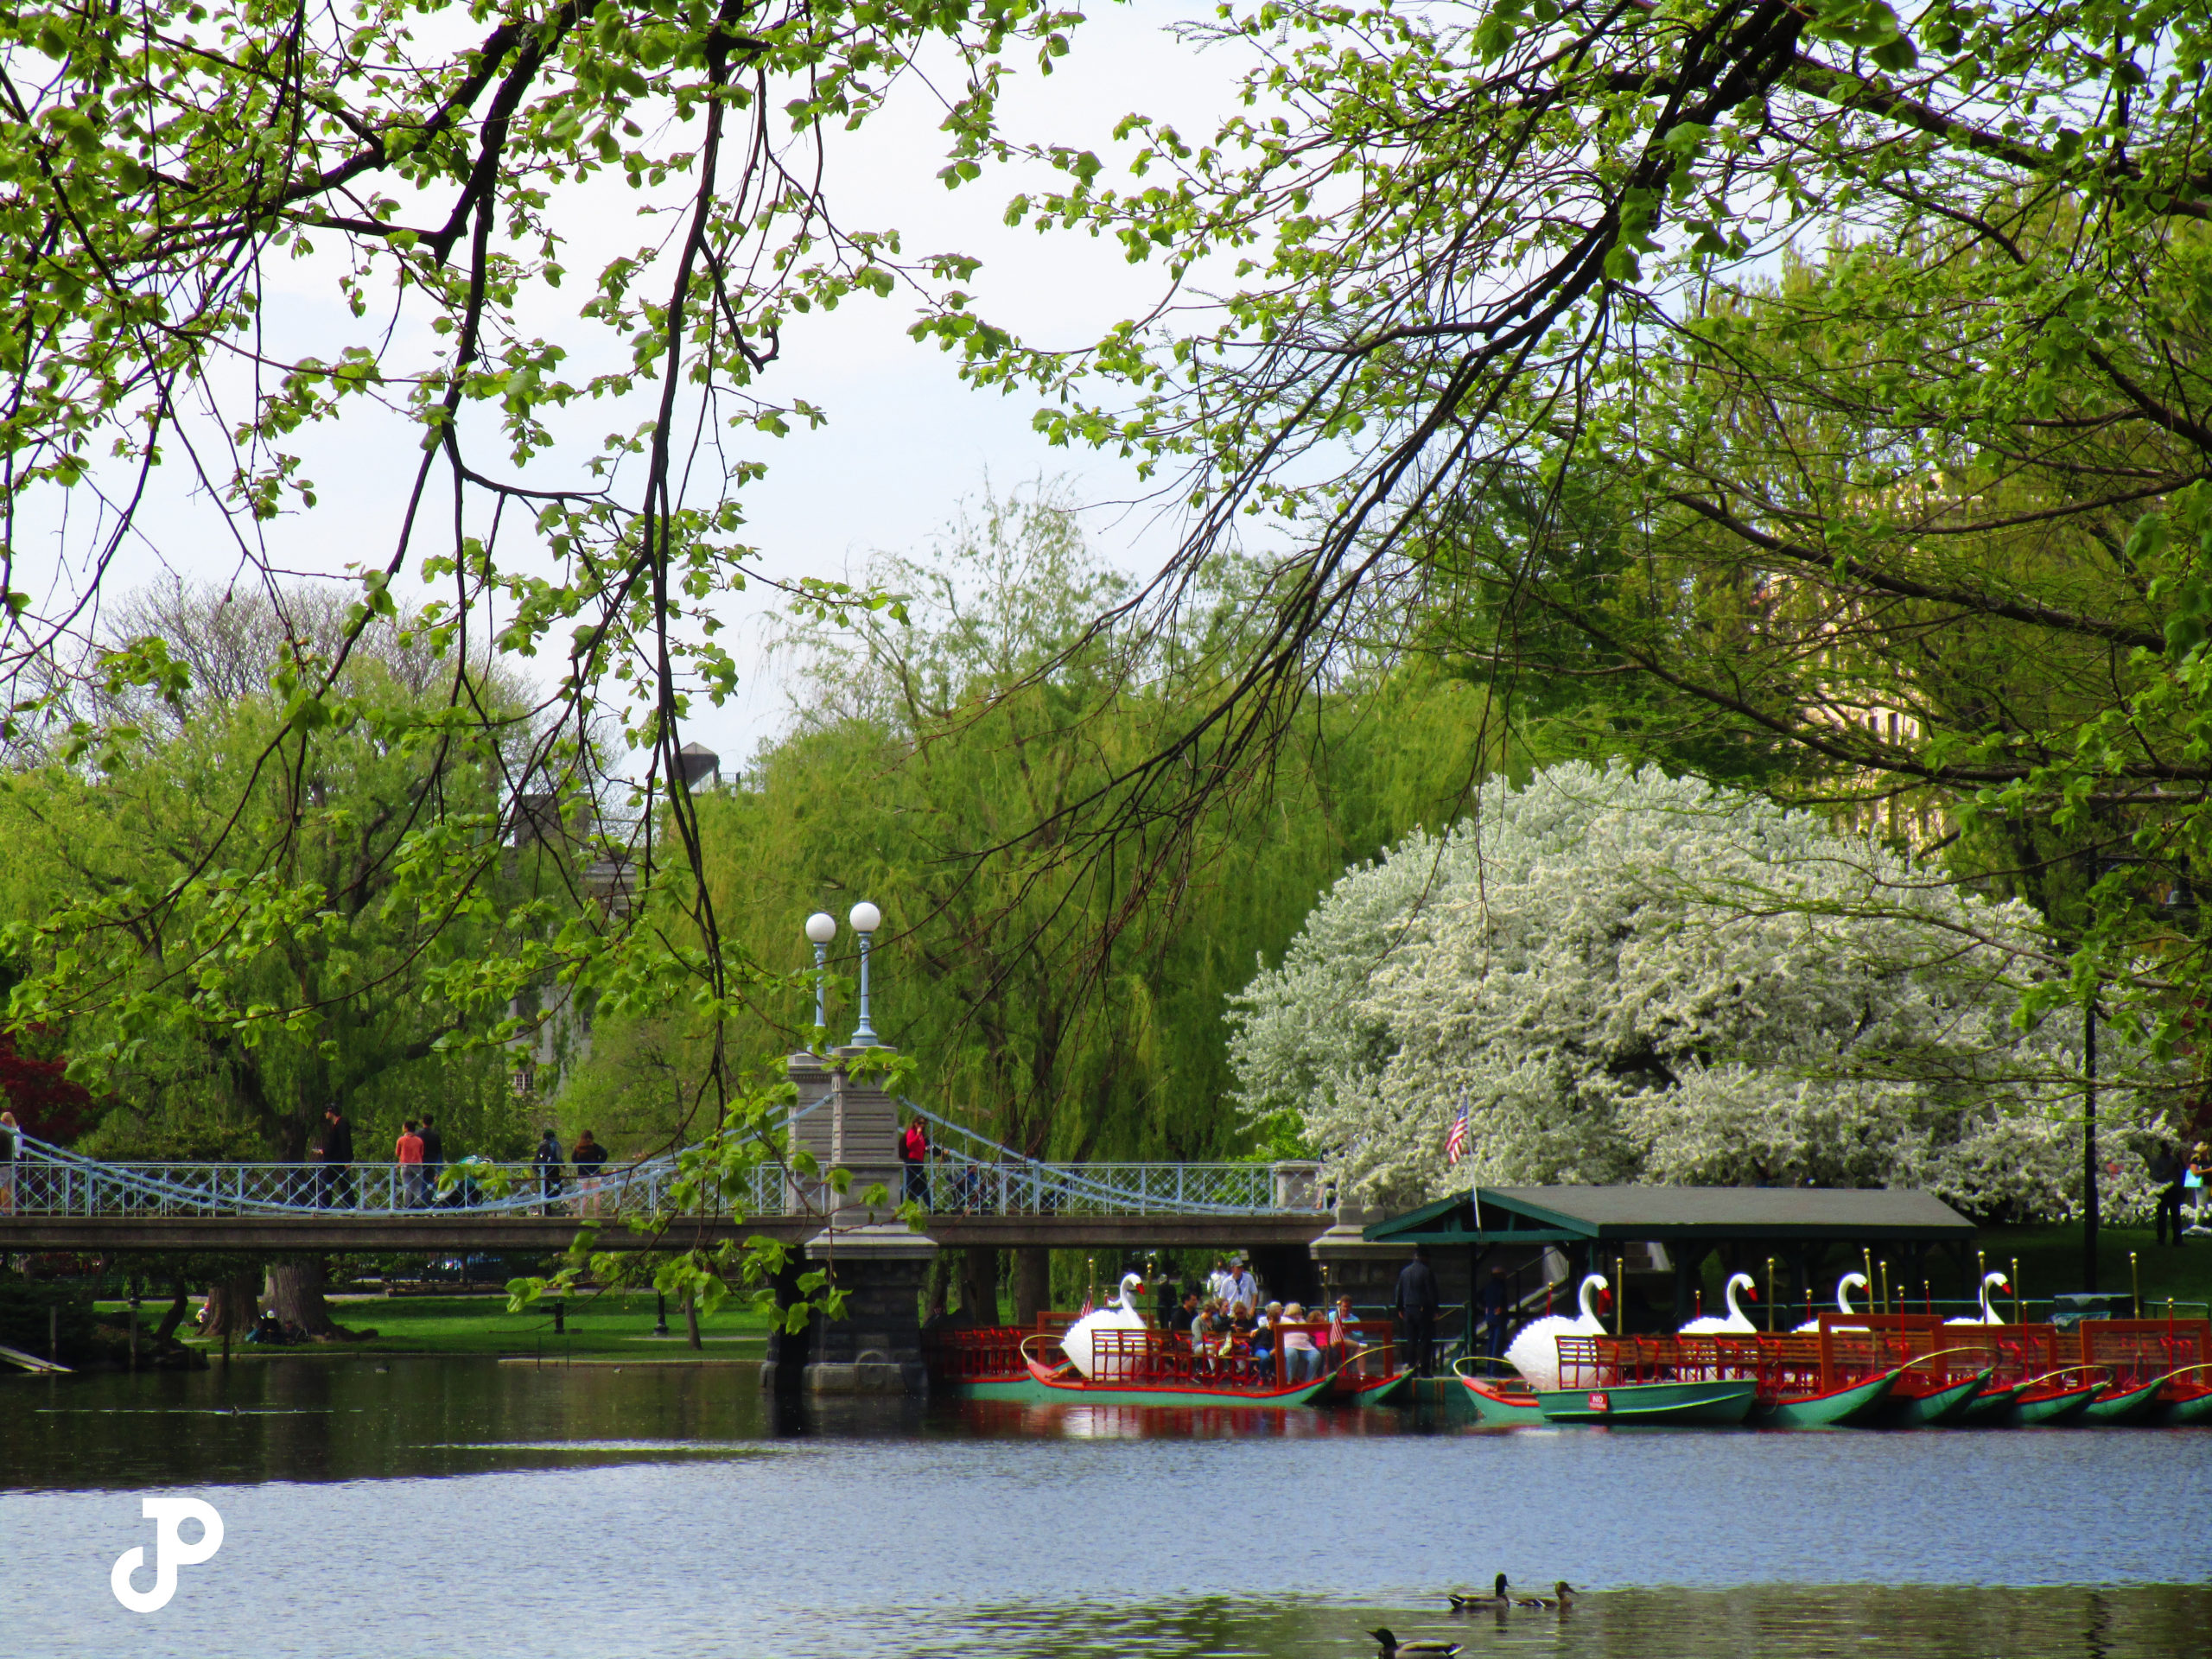 swan boats floating on a pond beside a bridge in the Boston Public Garden